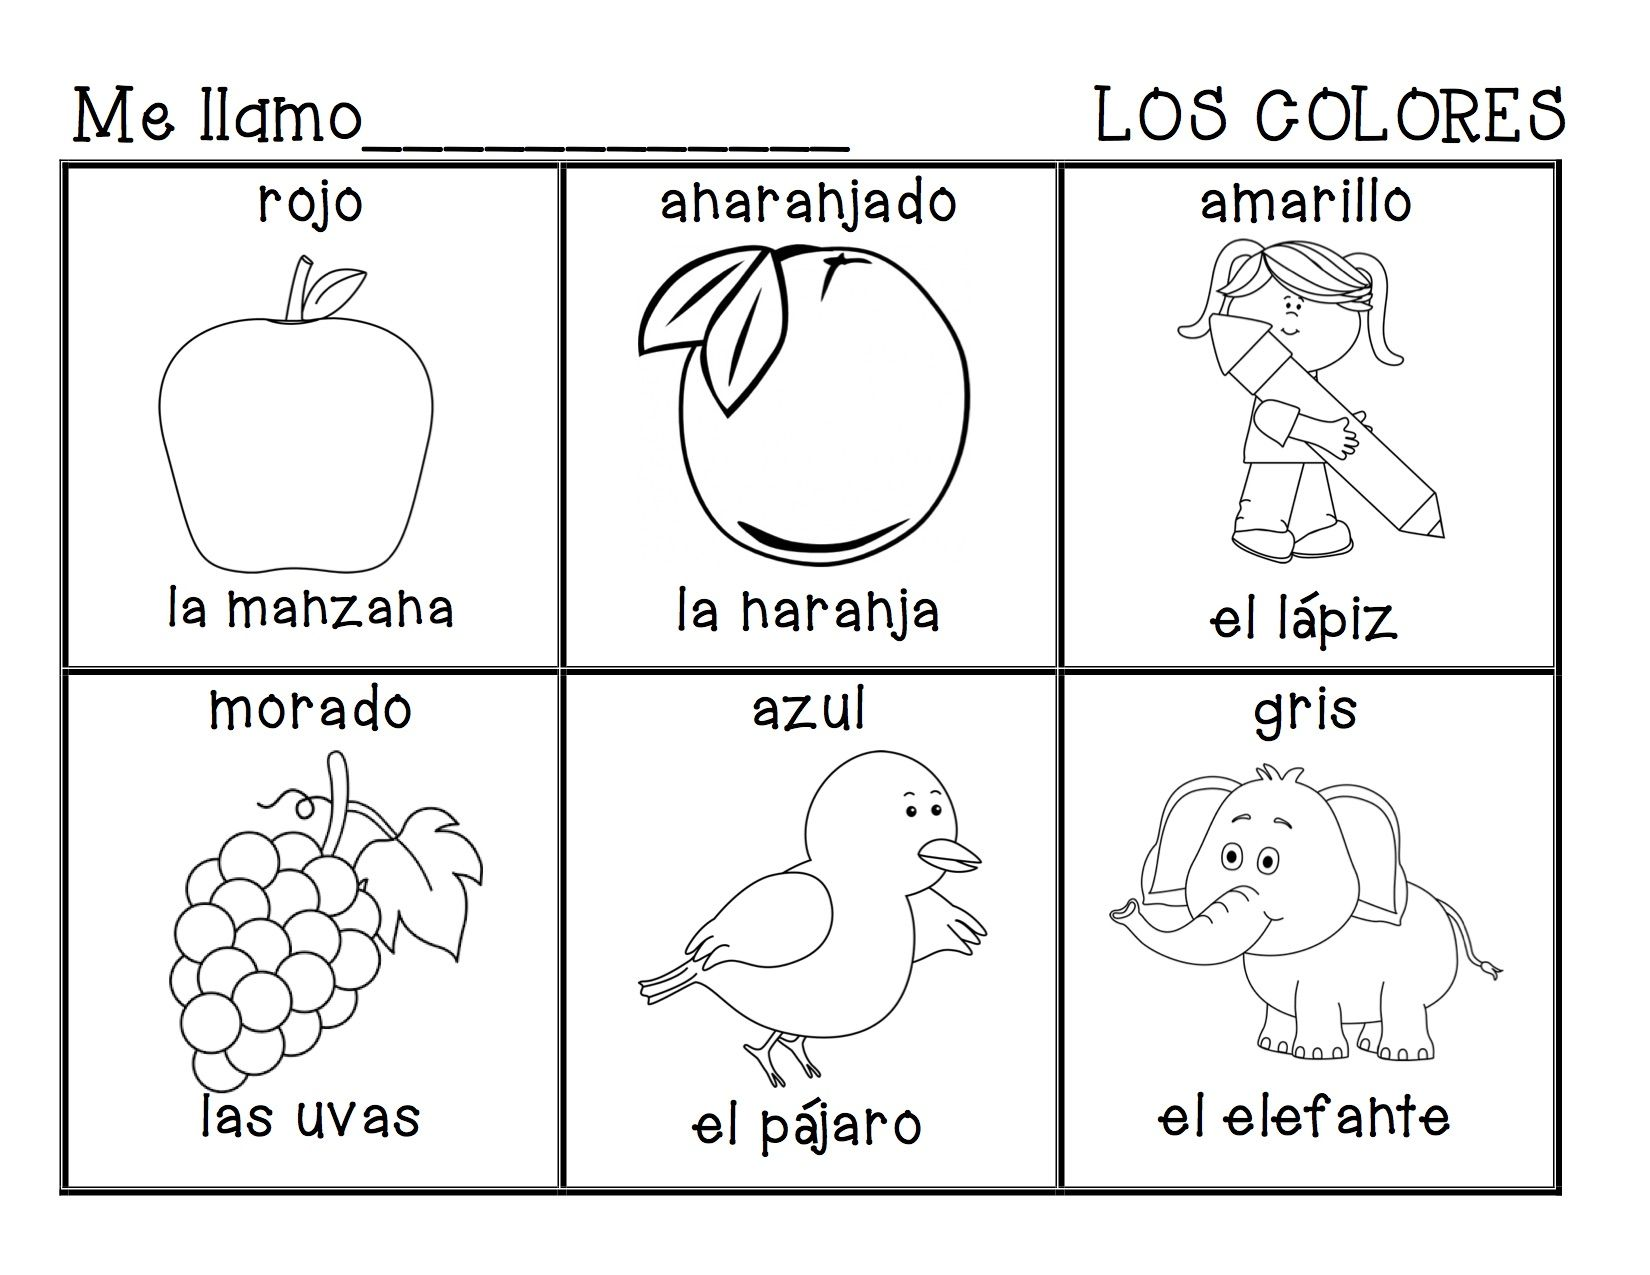 Spanish Coloring Sheet For A Paintbrush For Paco By